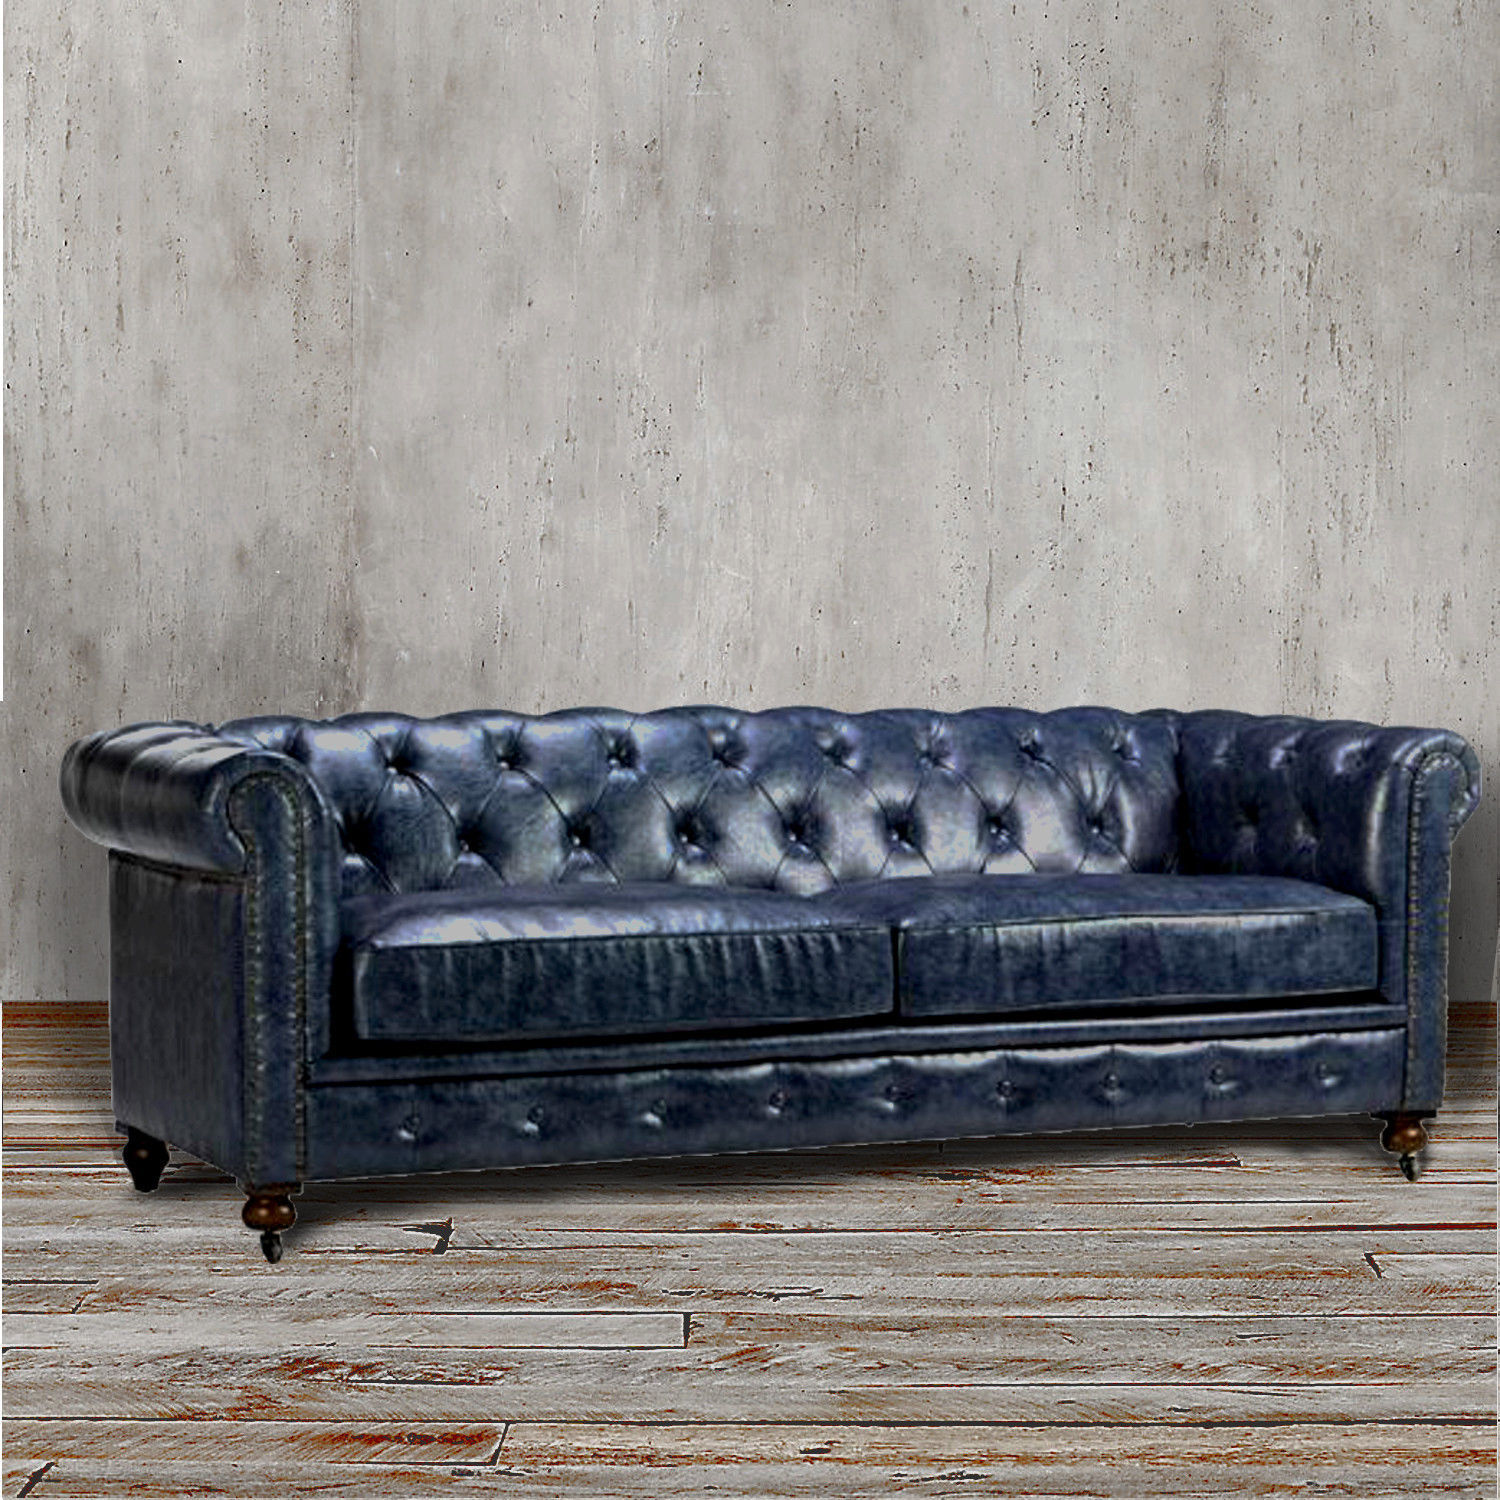 Blue leather chesterfield sofa at 1stdibs - Previousnext Previous Image Next Image Vintage Steel Blue Leather Chesterfield Sofa At 1stdibs